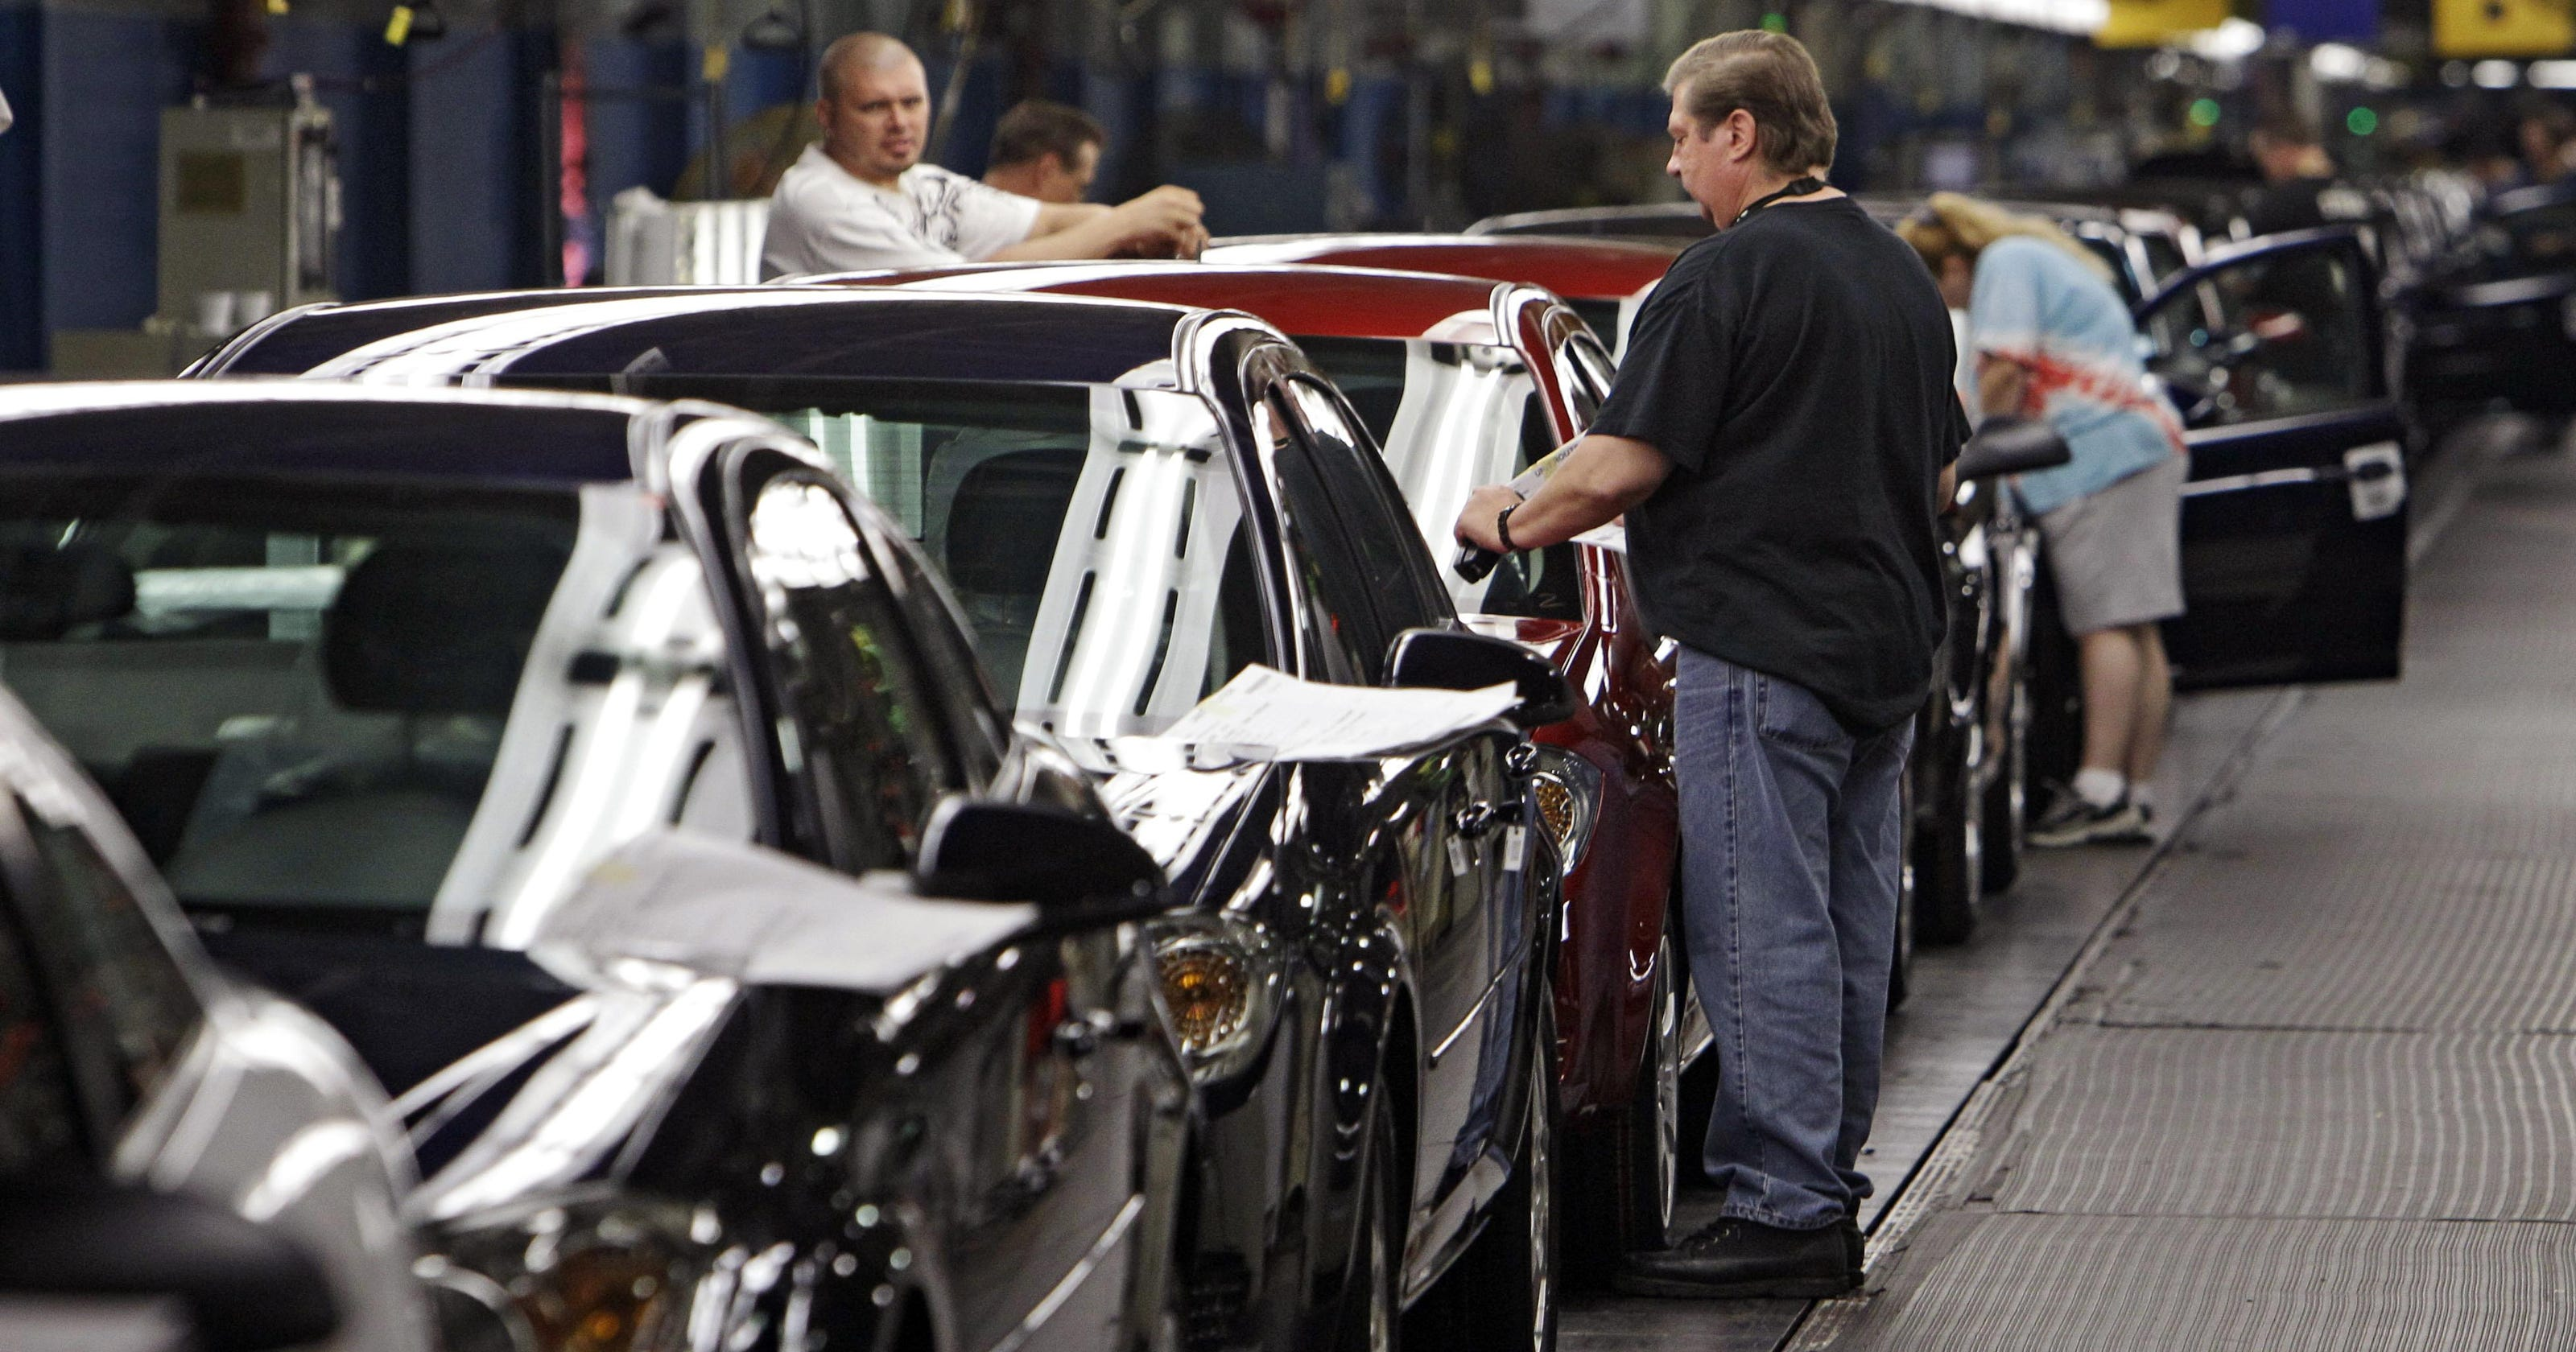 Uaw Gm Ratification Held Up By Skilled Trades